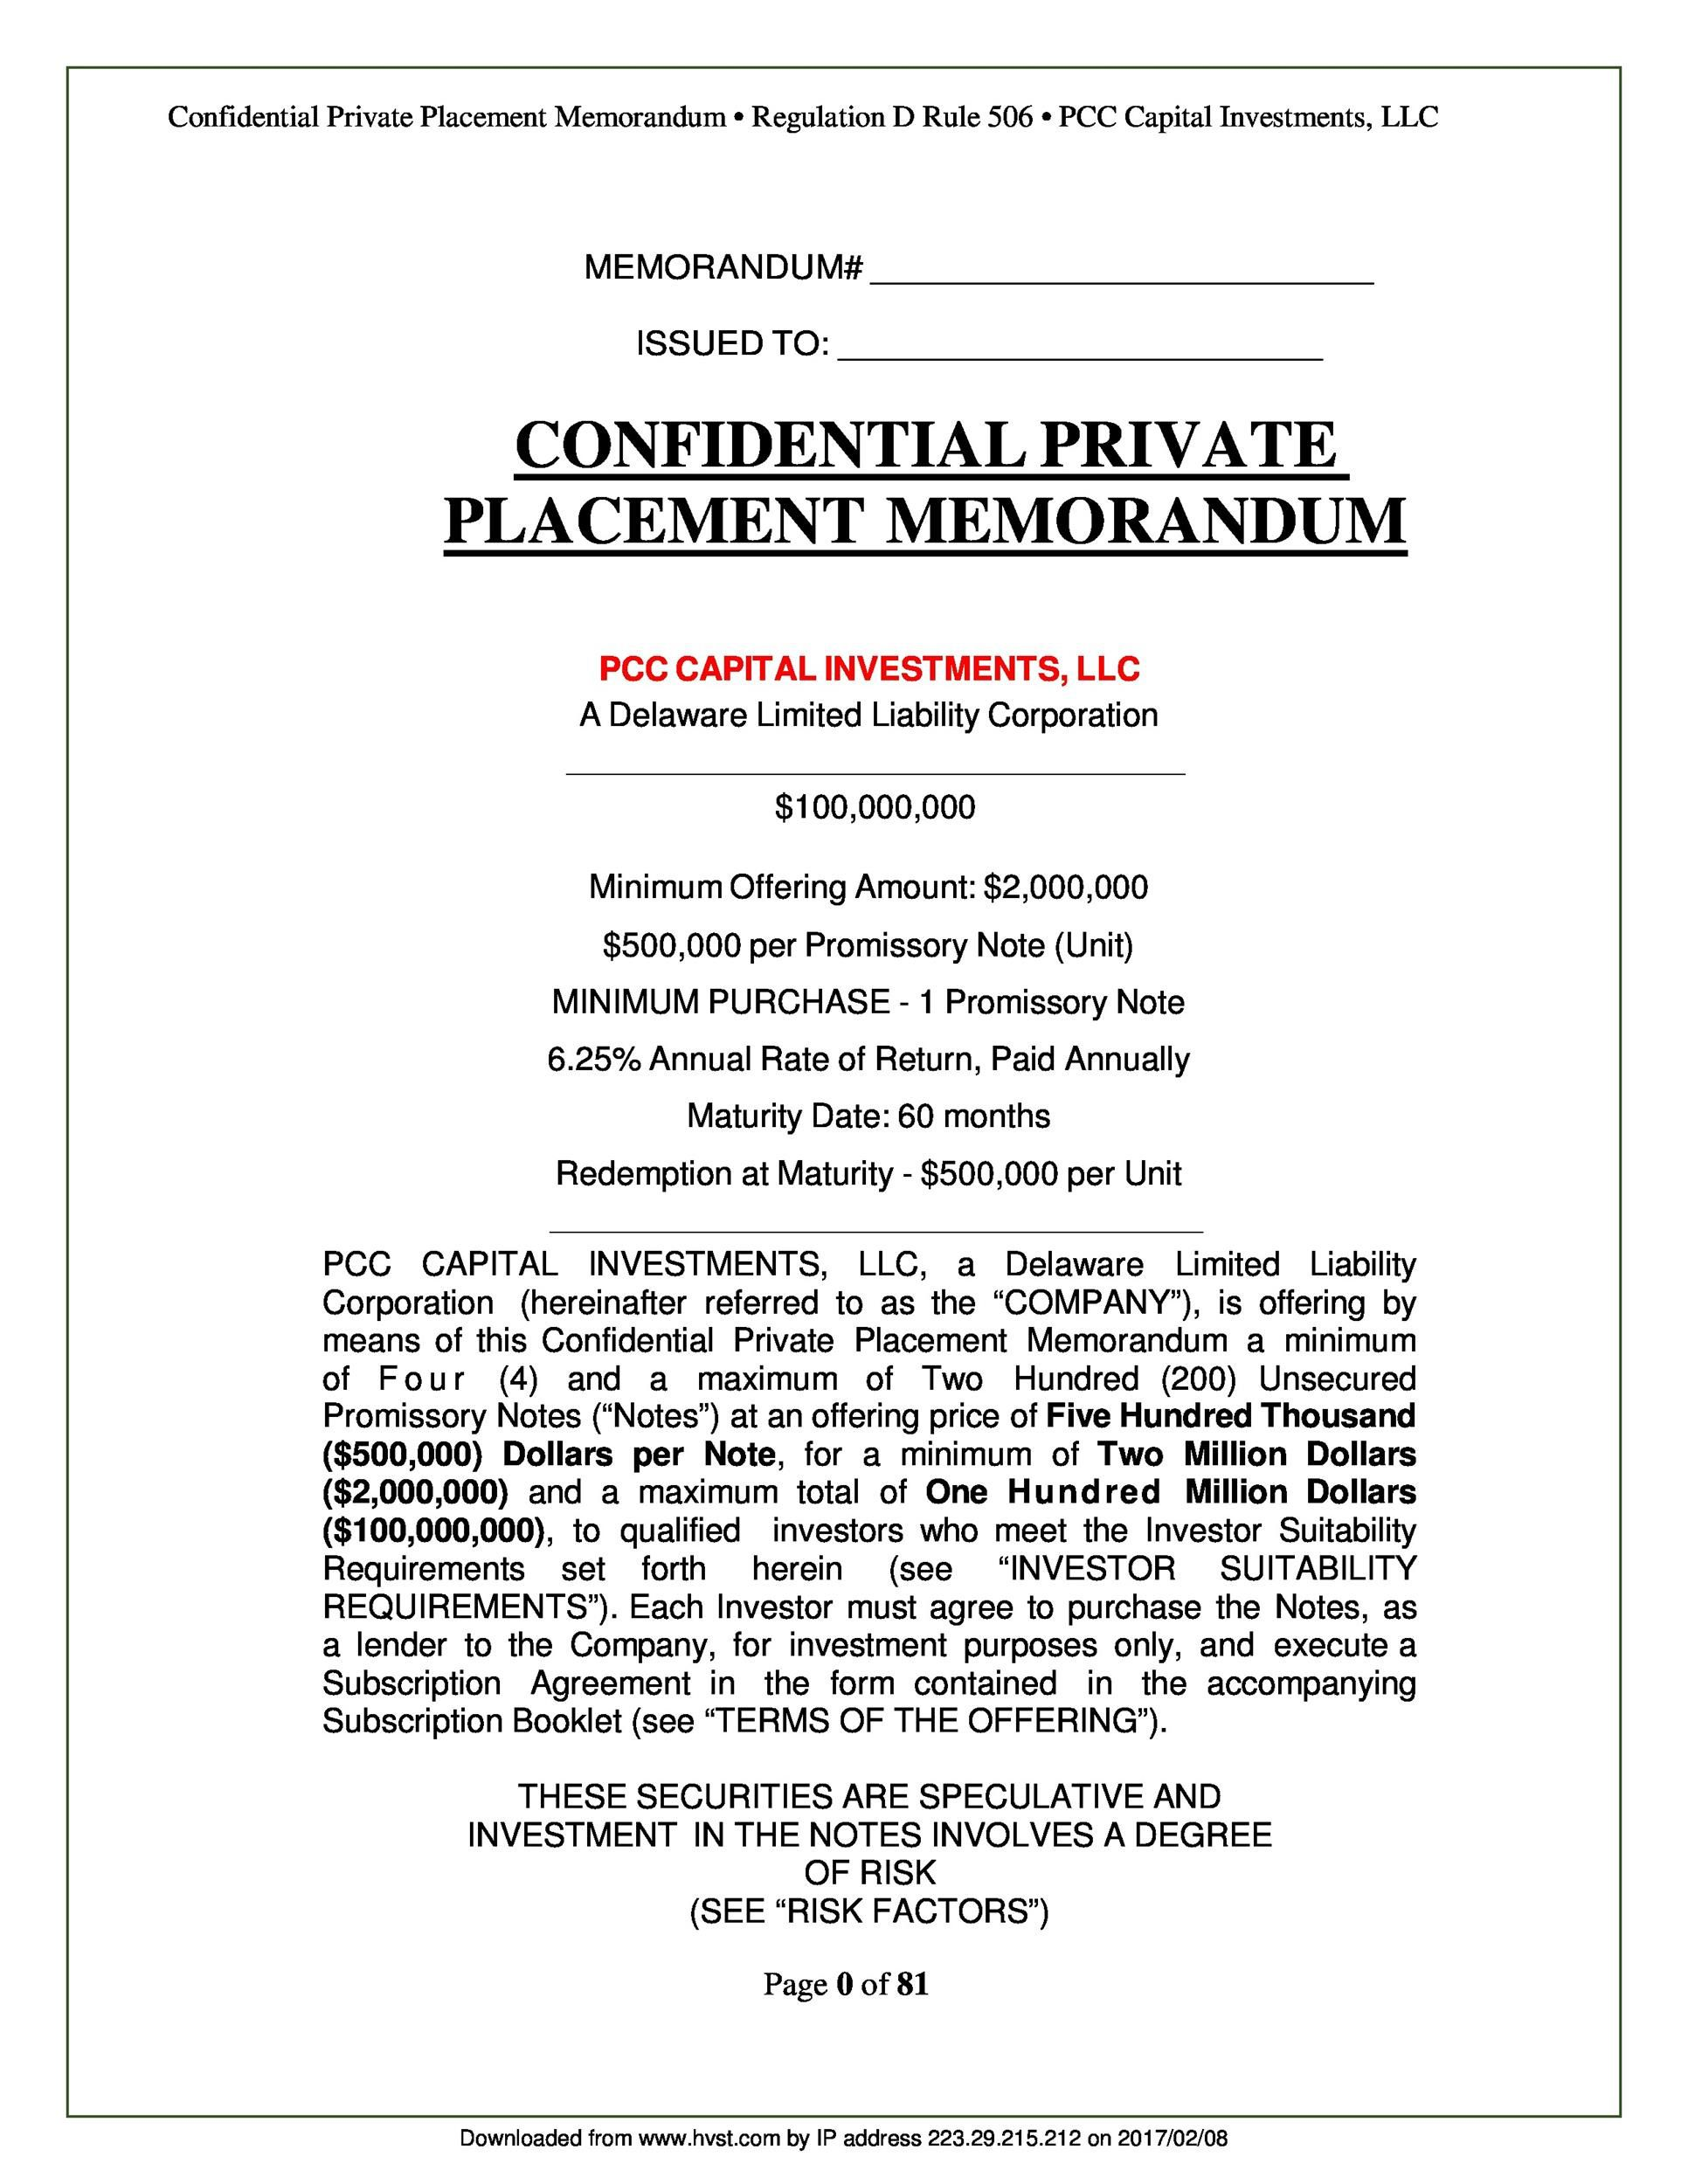 005 Amazing Private Placement Memorandum Template Concept  Real Estate SingaporeFull